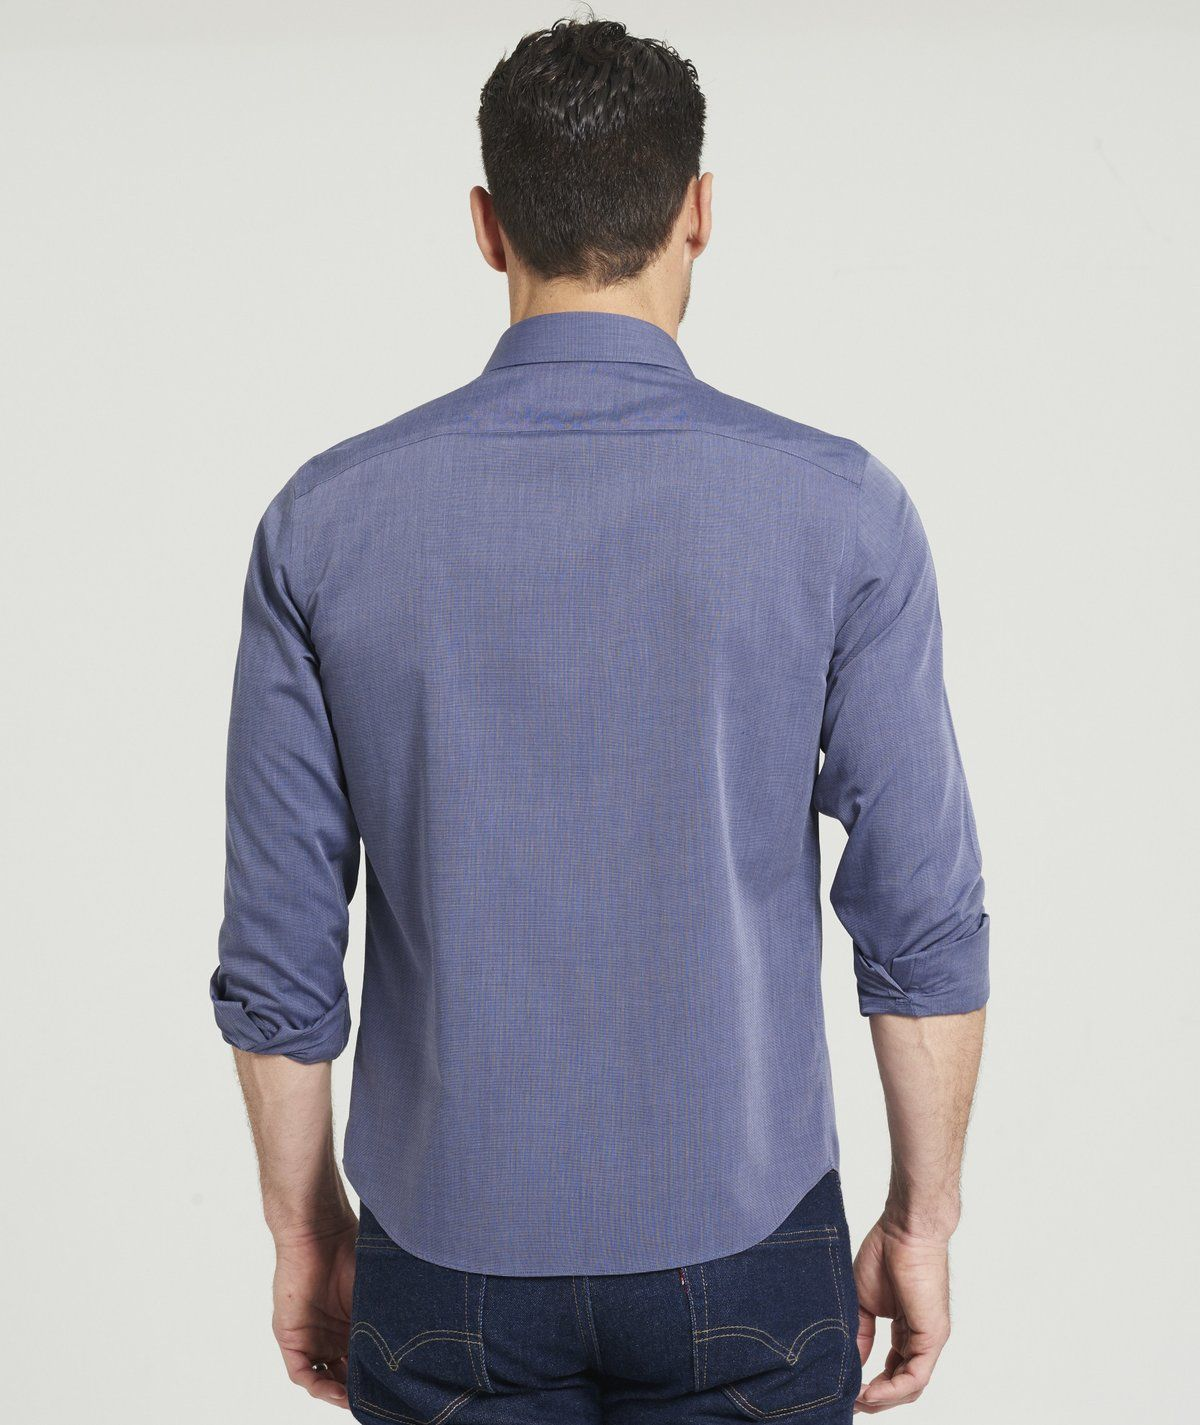 Shirt Melody with pleated front in dark blue